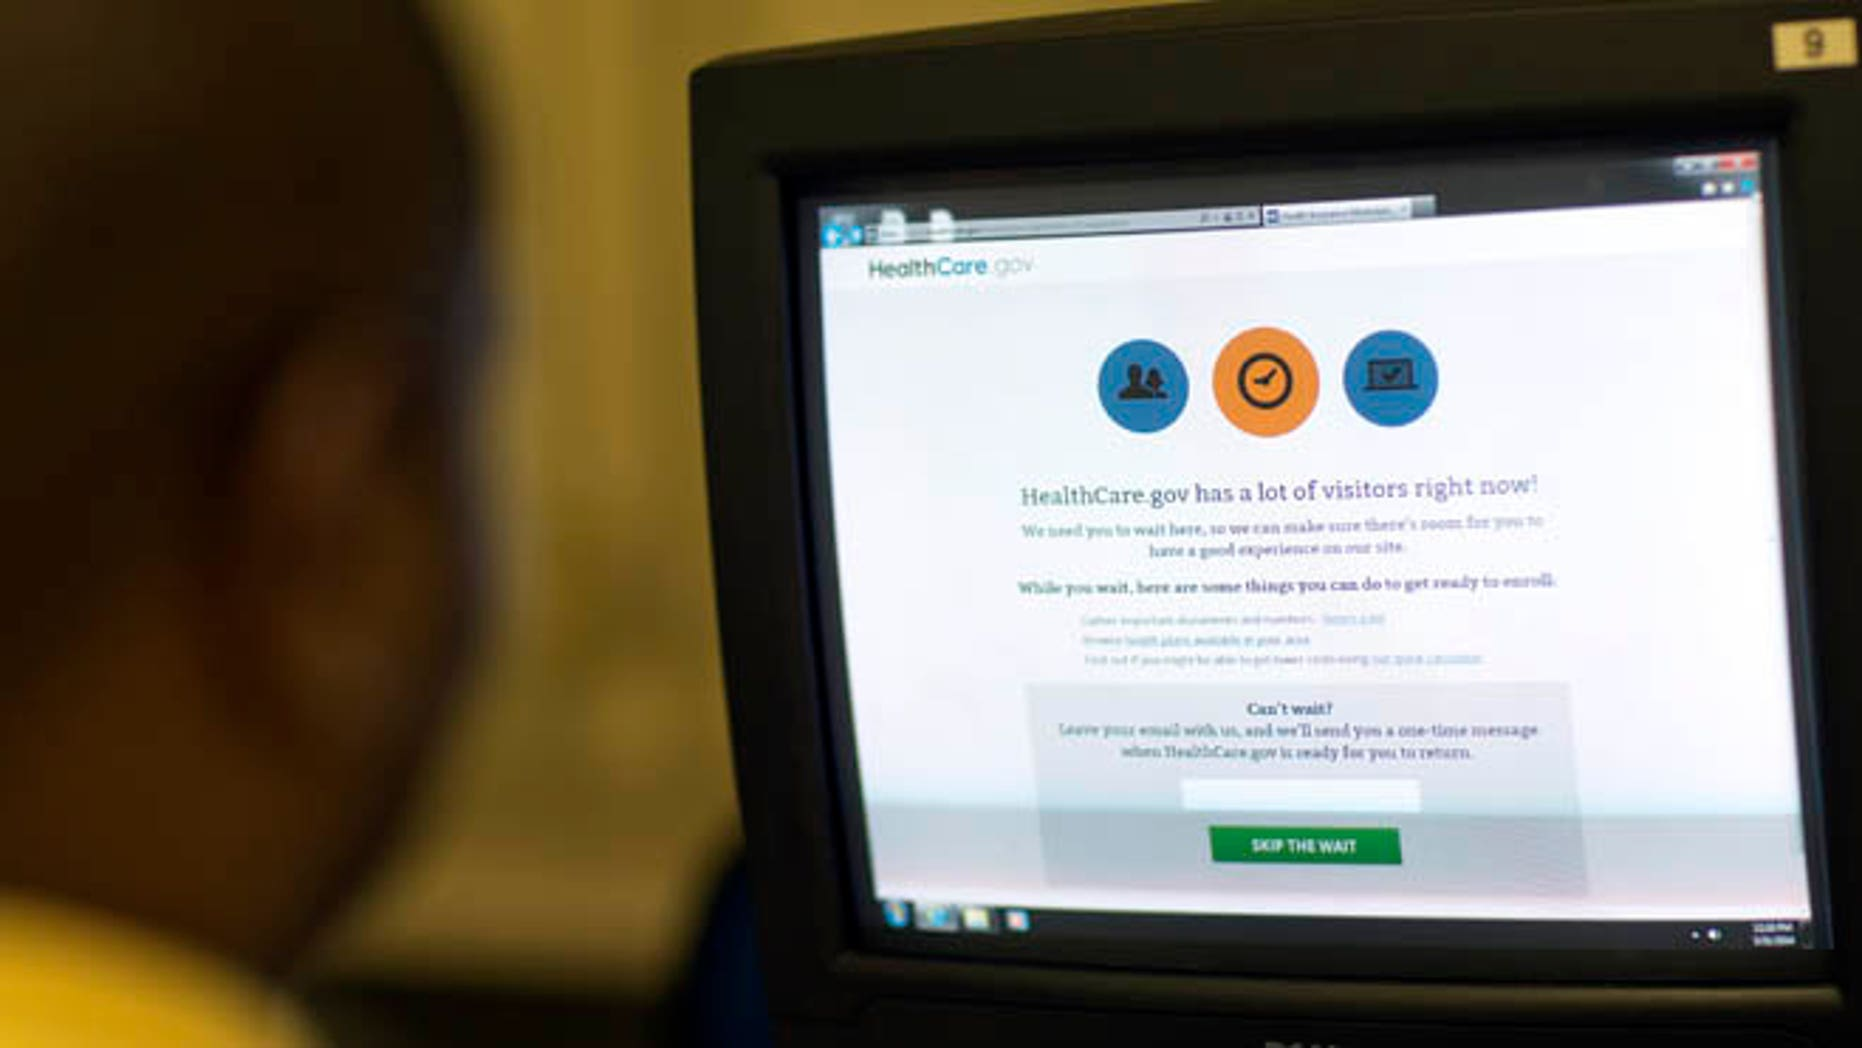 March 31, 2014: An applicant is shown trying to sign up for health insurance on Healthcare.gov.